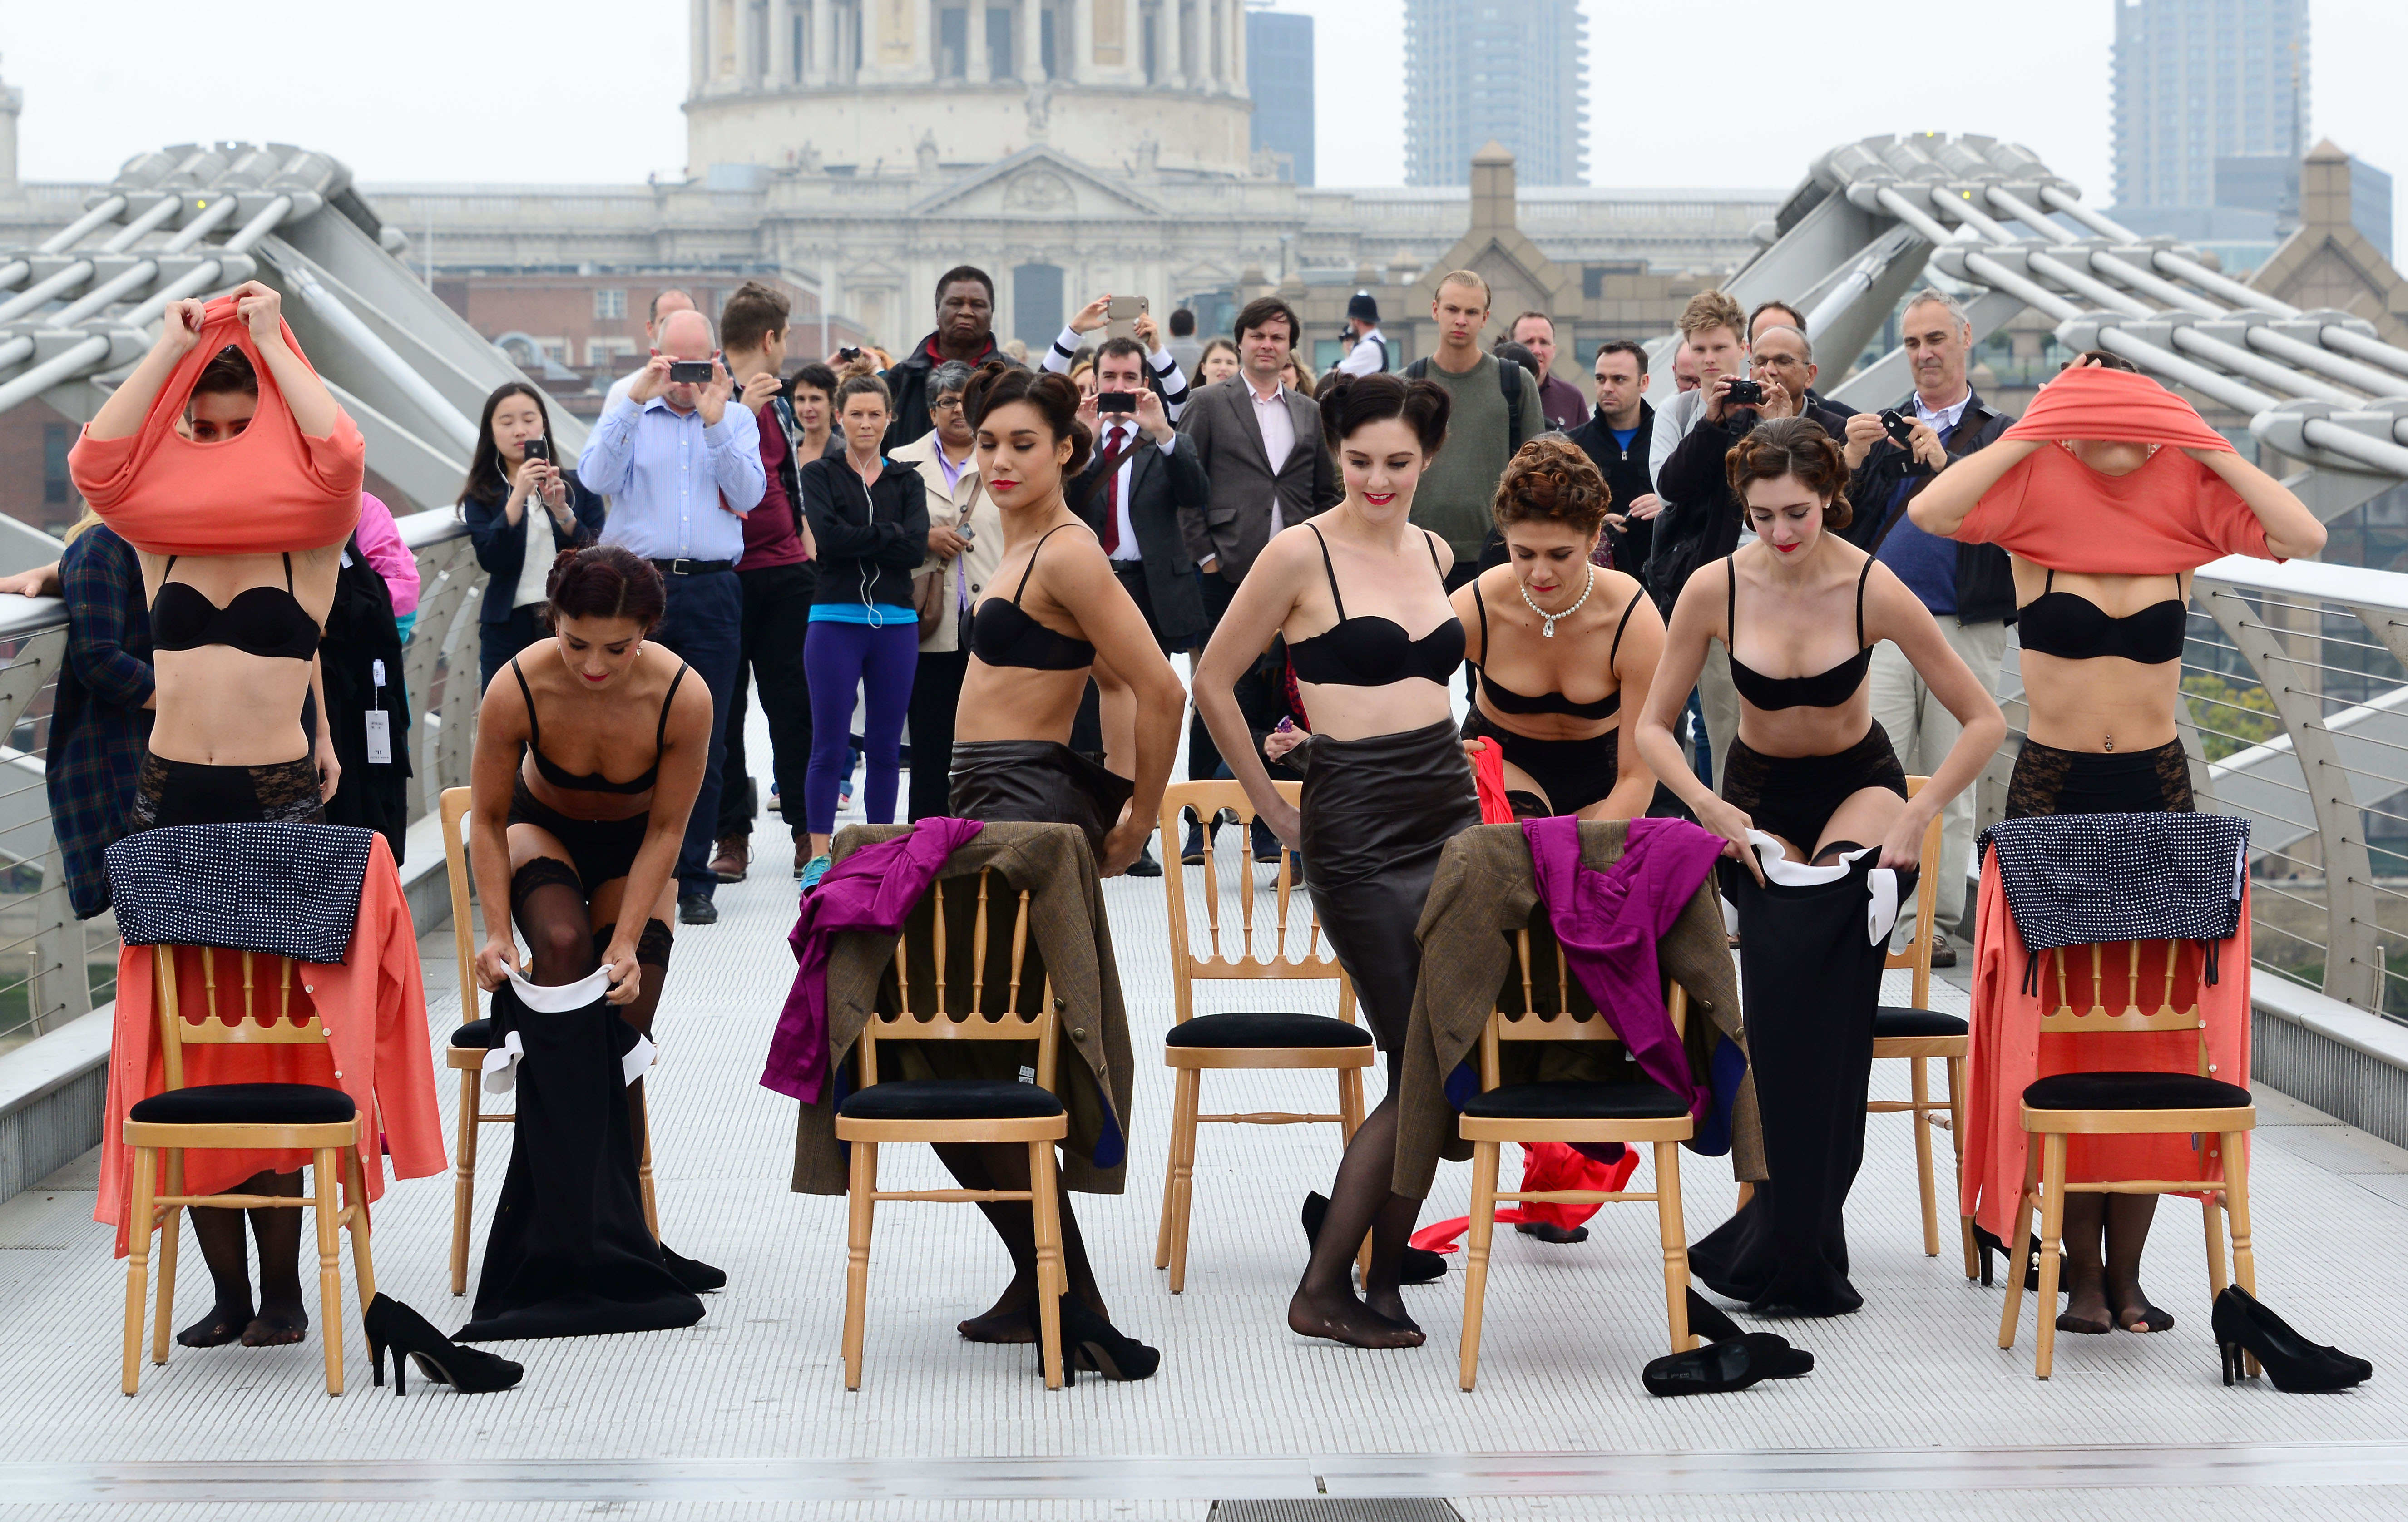 A group of dancers in the midst of a revers striptease putting clothes on Millennium bridge.